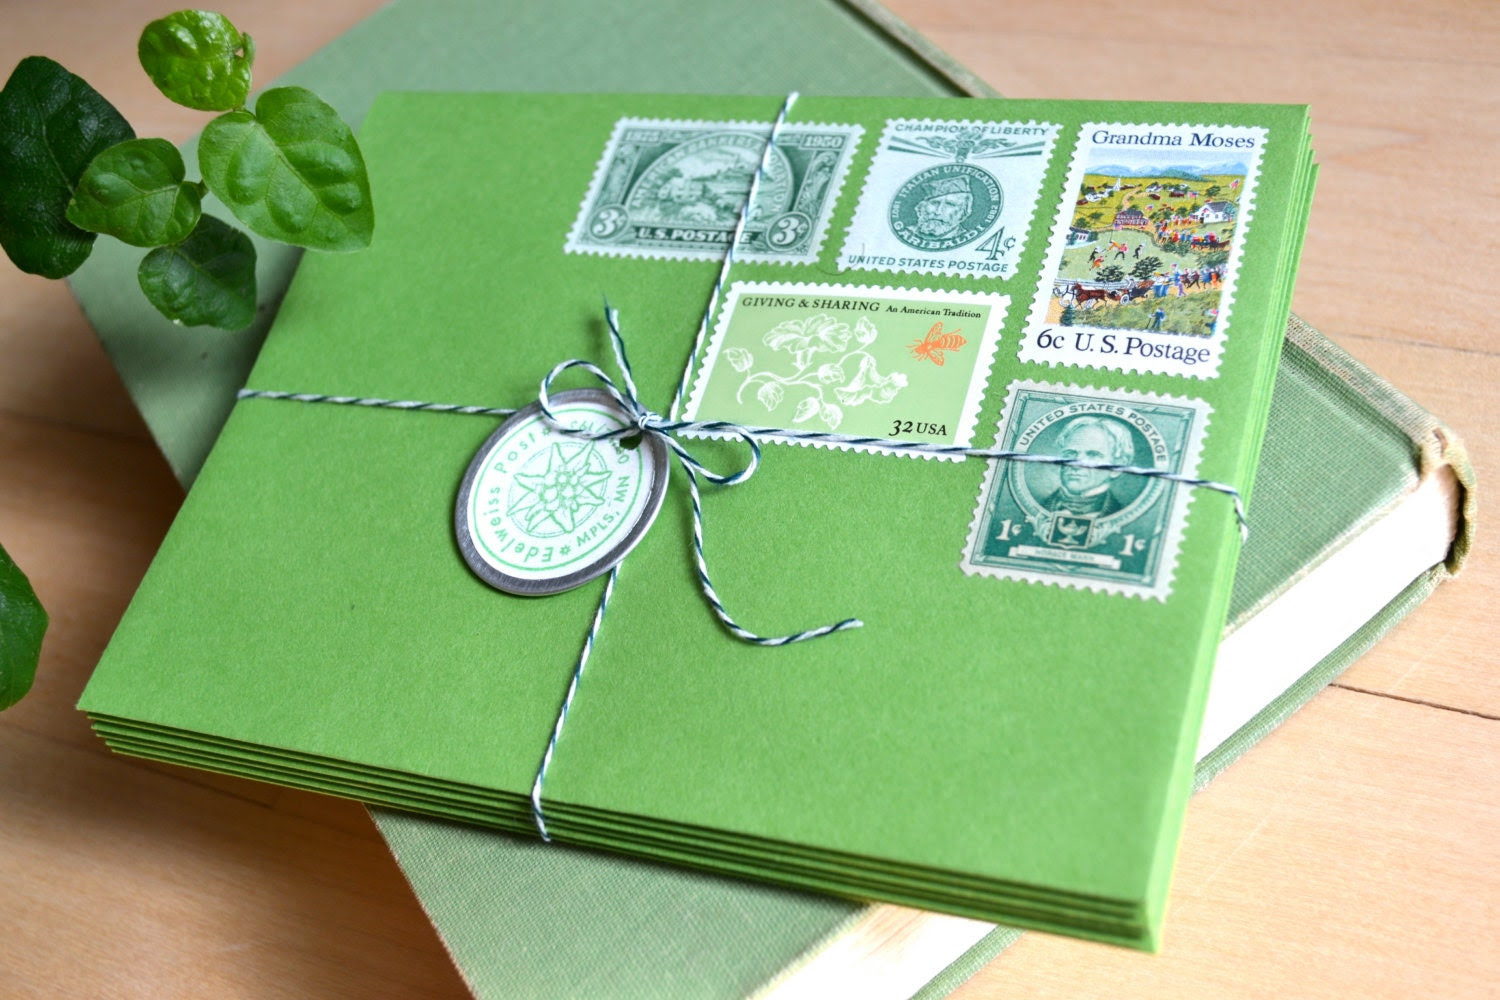 Green Greetings Postage Stationery Gift Set, Lucky Irish Leprechaun Letters, St. Patrick's Day - EdelweissPost